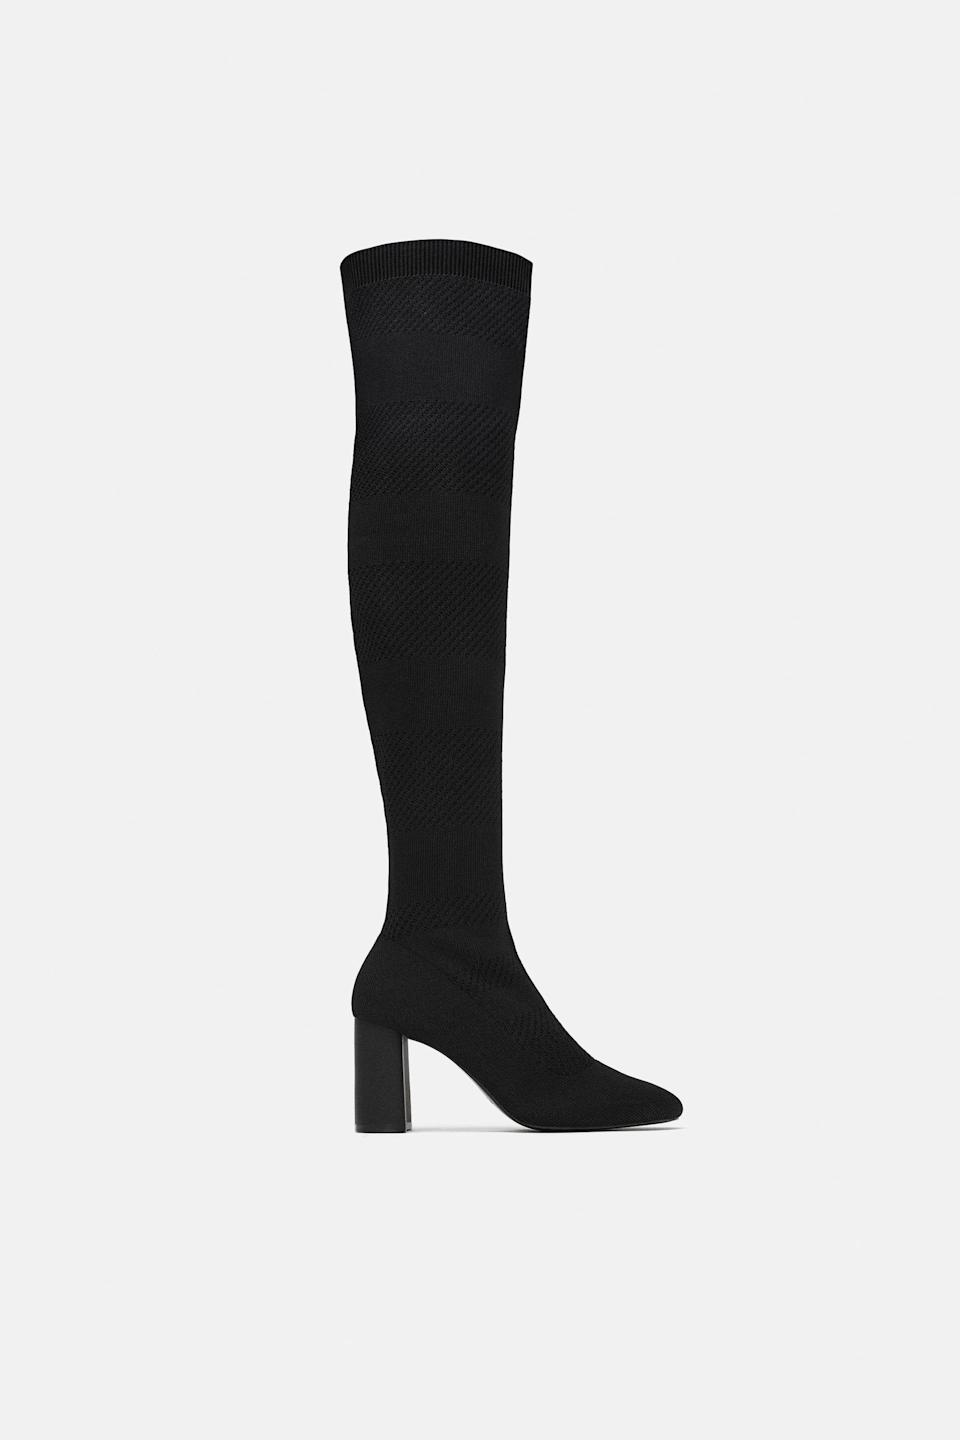 Affordable thigh-high boots I can get behind.